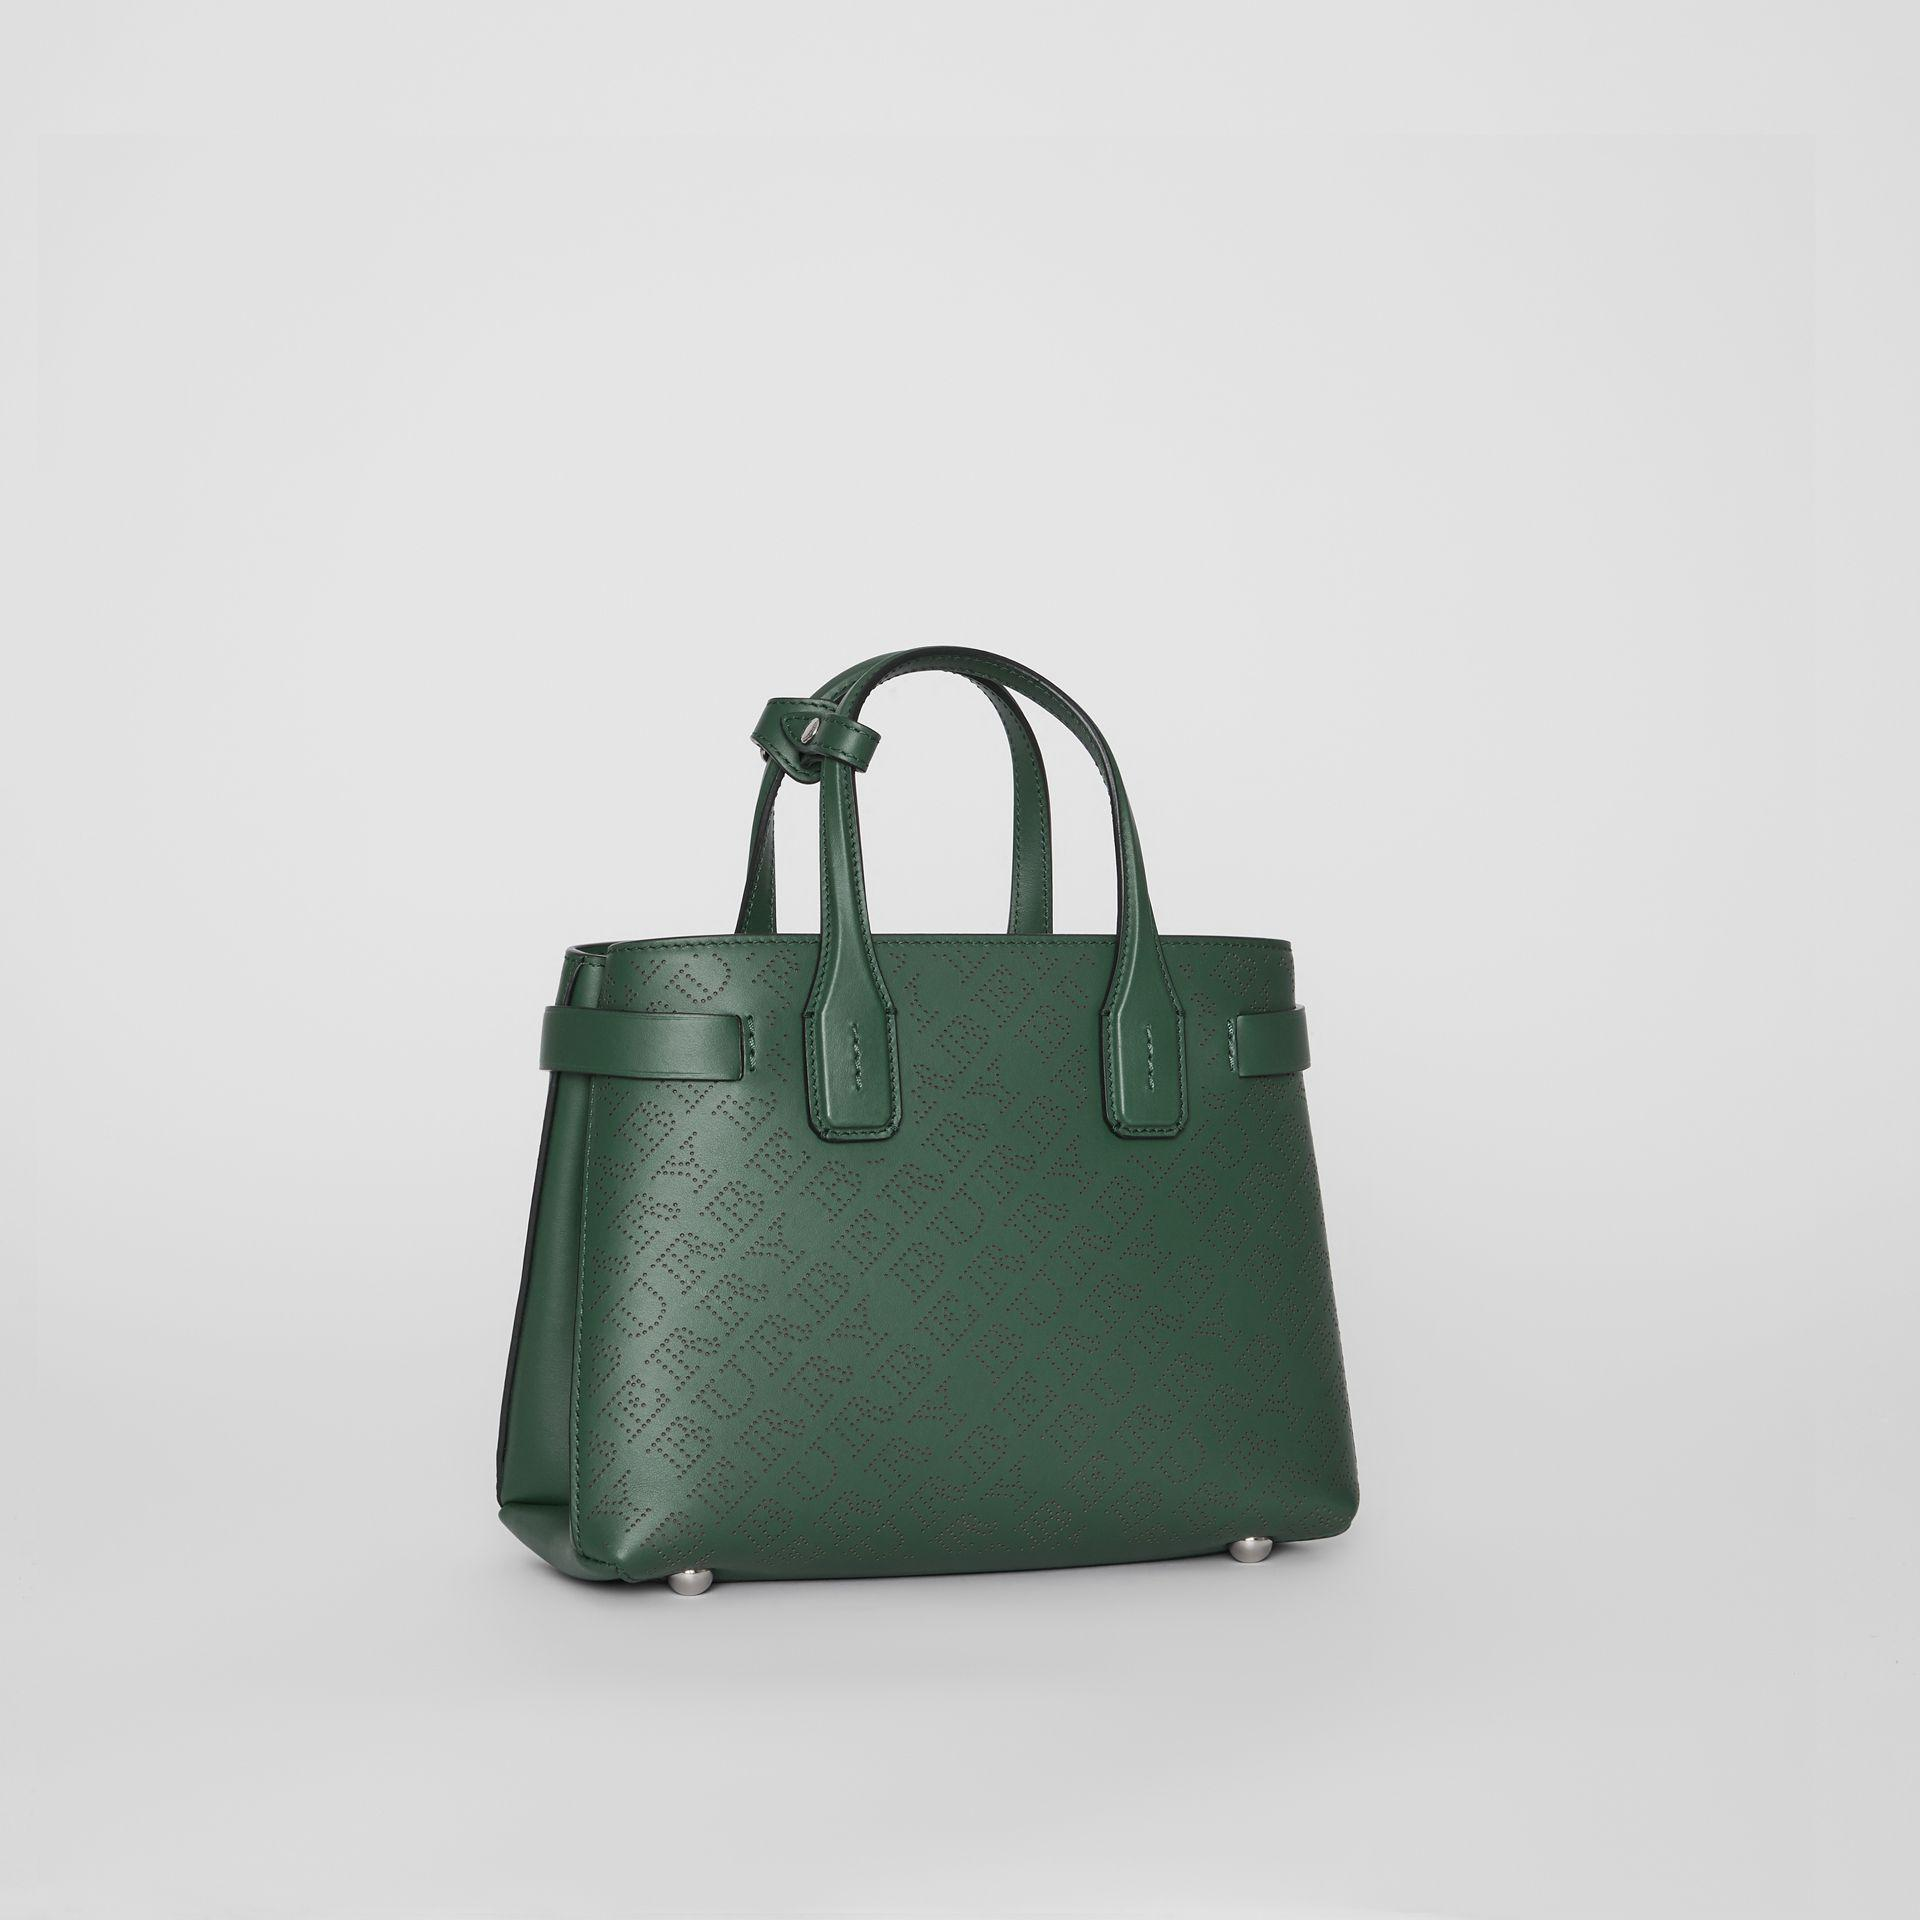 7769d4203b9a Burberry The Medium Banner In Perforated Logo Leather in Green - Lyst